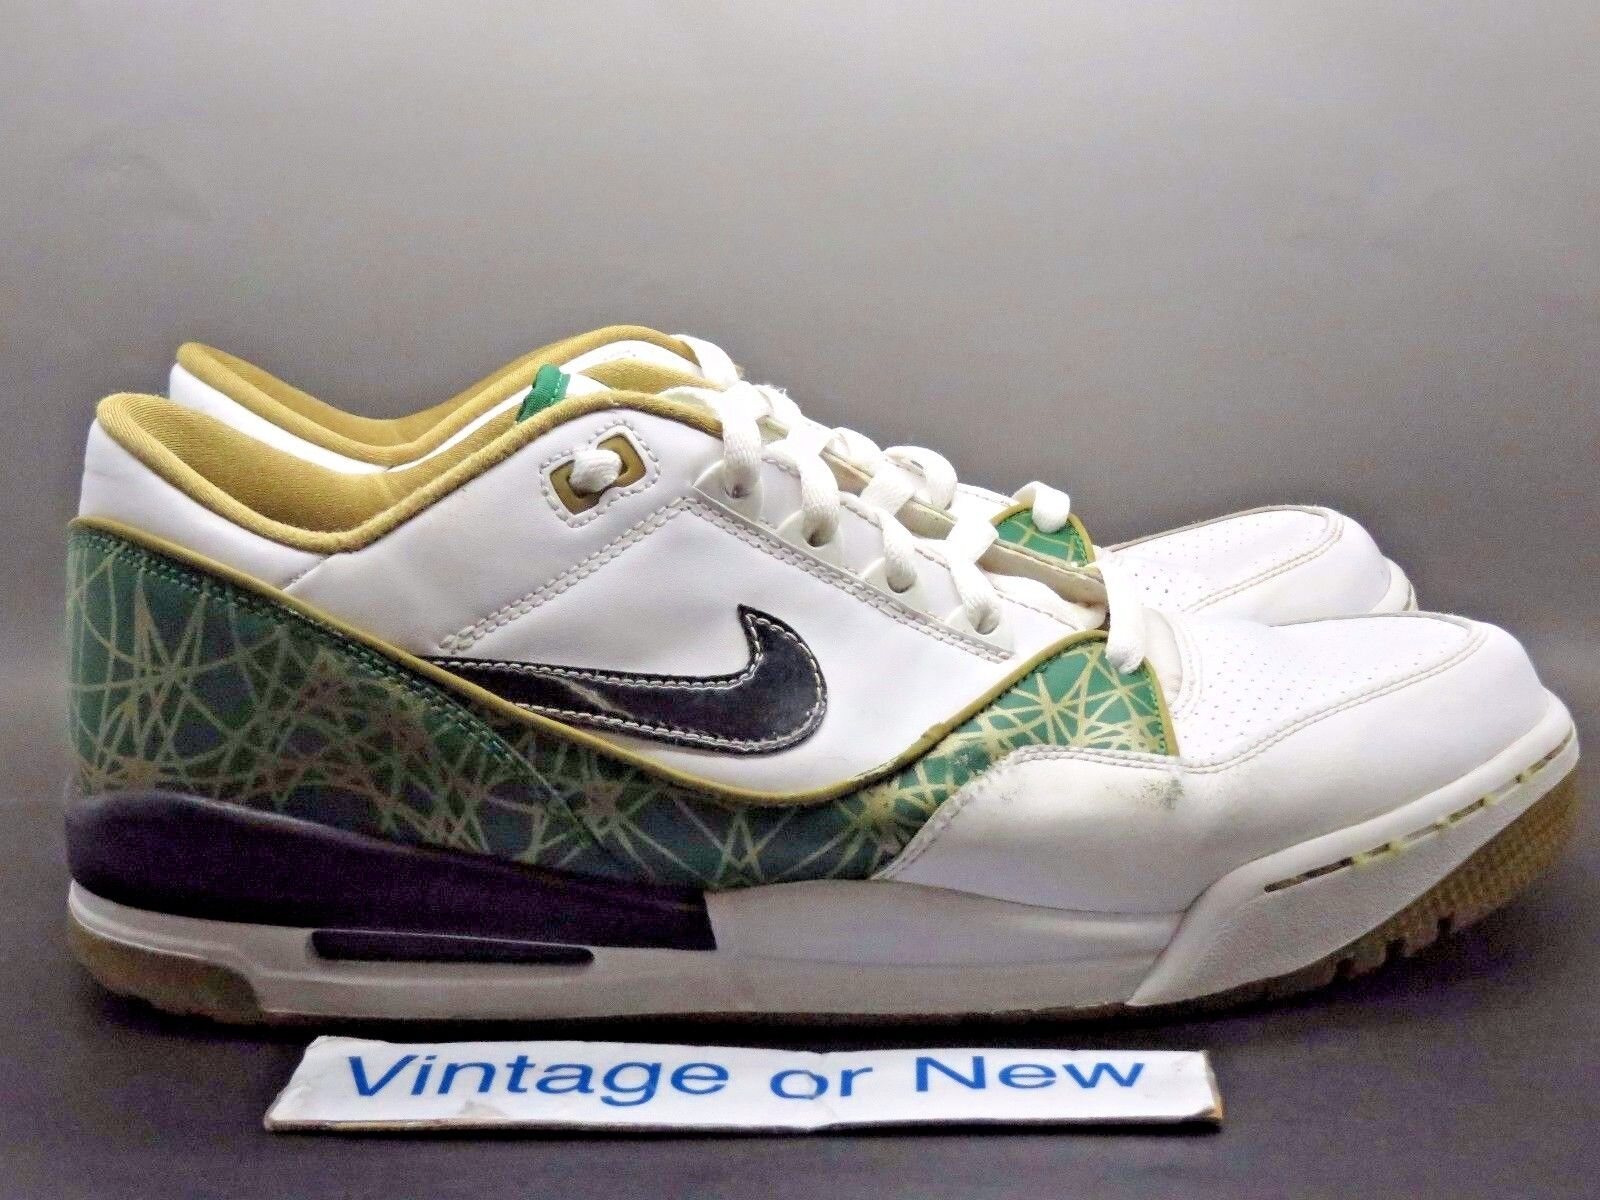 Nike Air Assault Low White Pine Green gold Black 2008 sz 13